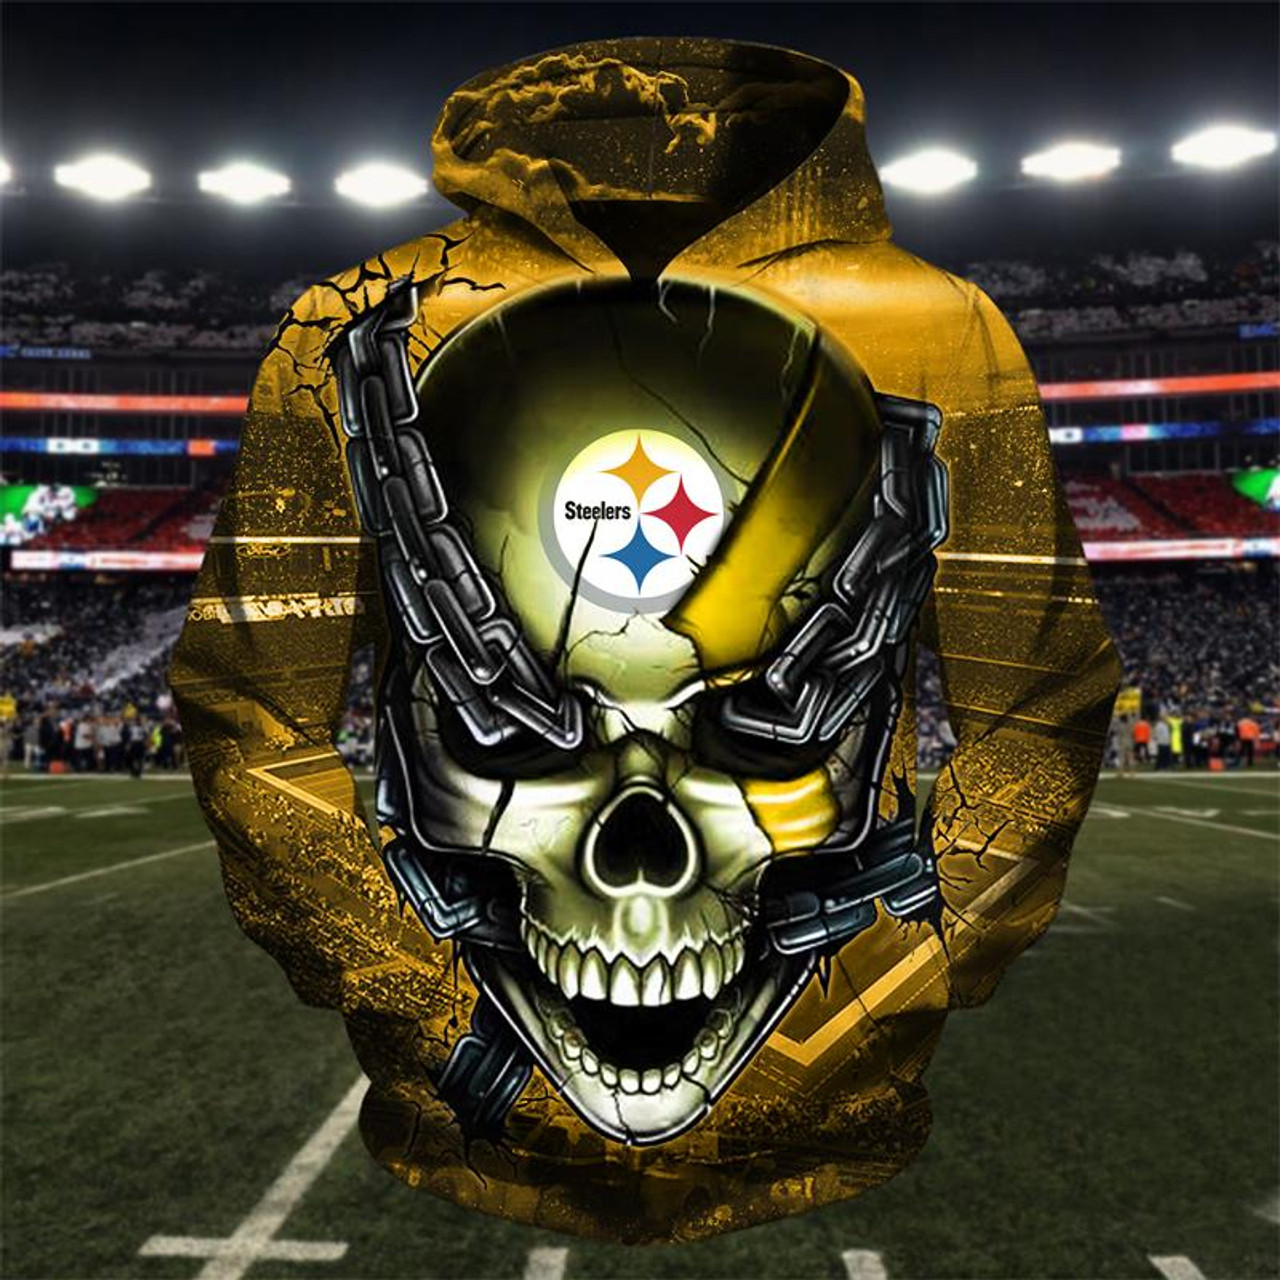 new style 5a3b8 ca895 **(OFFICIAL-N.F.L.PITTSBURGH-STEELERS-TEAM-FOOTBALL-PULLOVER-HOODIES &  STEELER-TEAM-LOGO-SKULL/STEEL-CITY-CHAINS,NICE-CUSTOM-3D-GRAPHIC-PRINTED-DOUBLE...